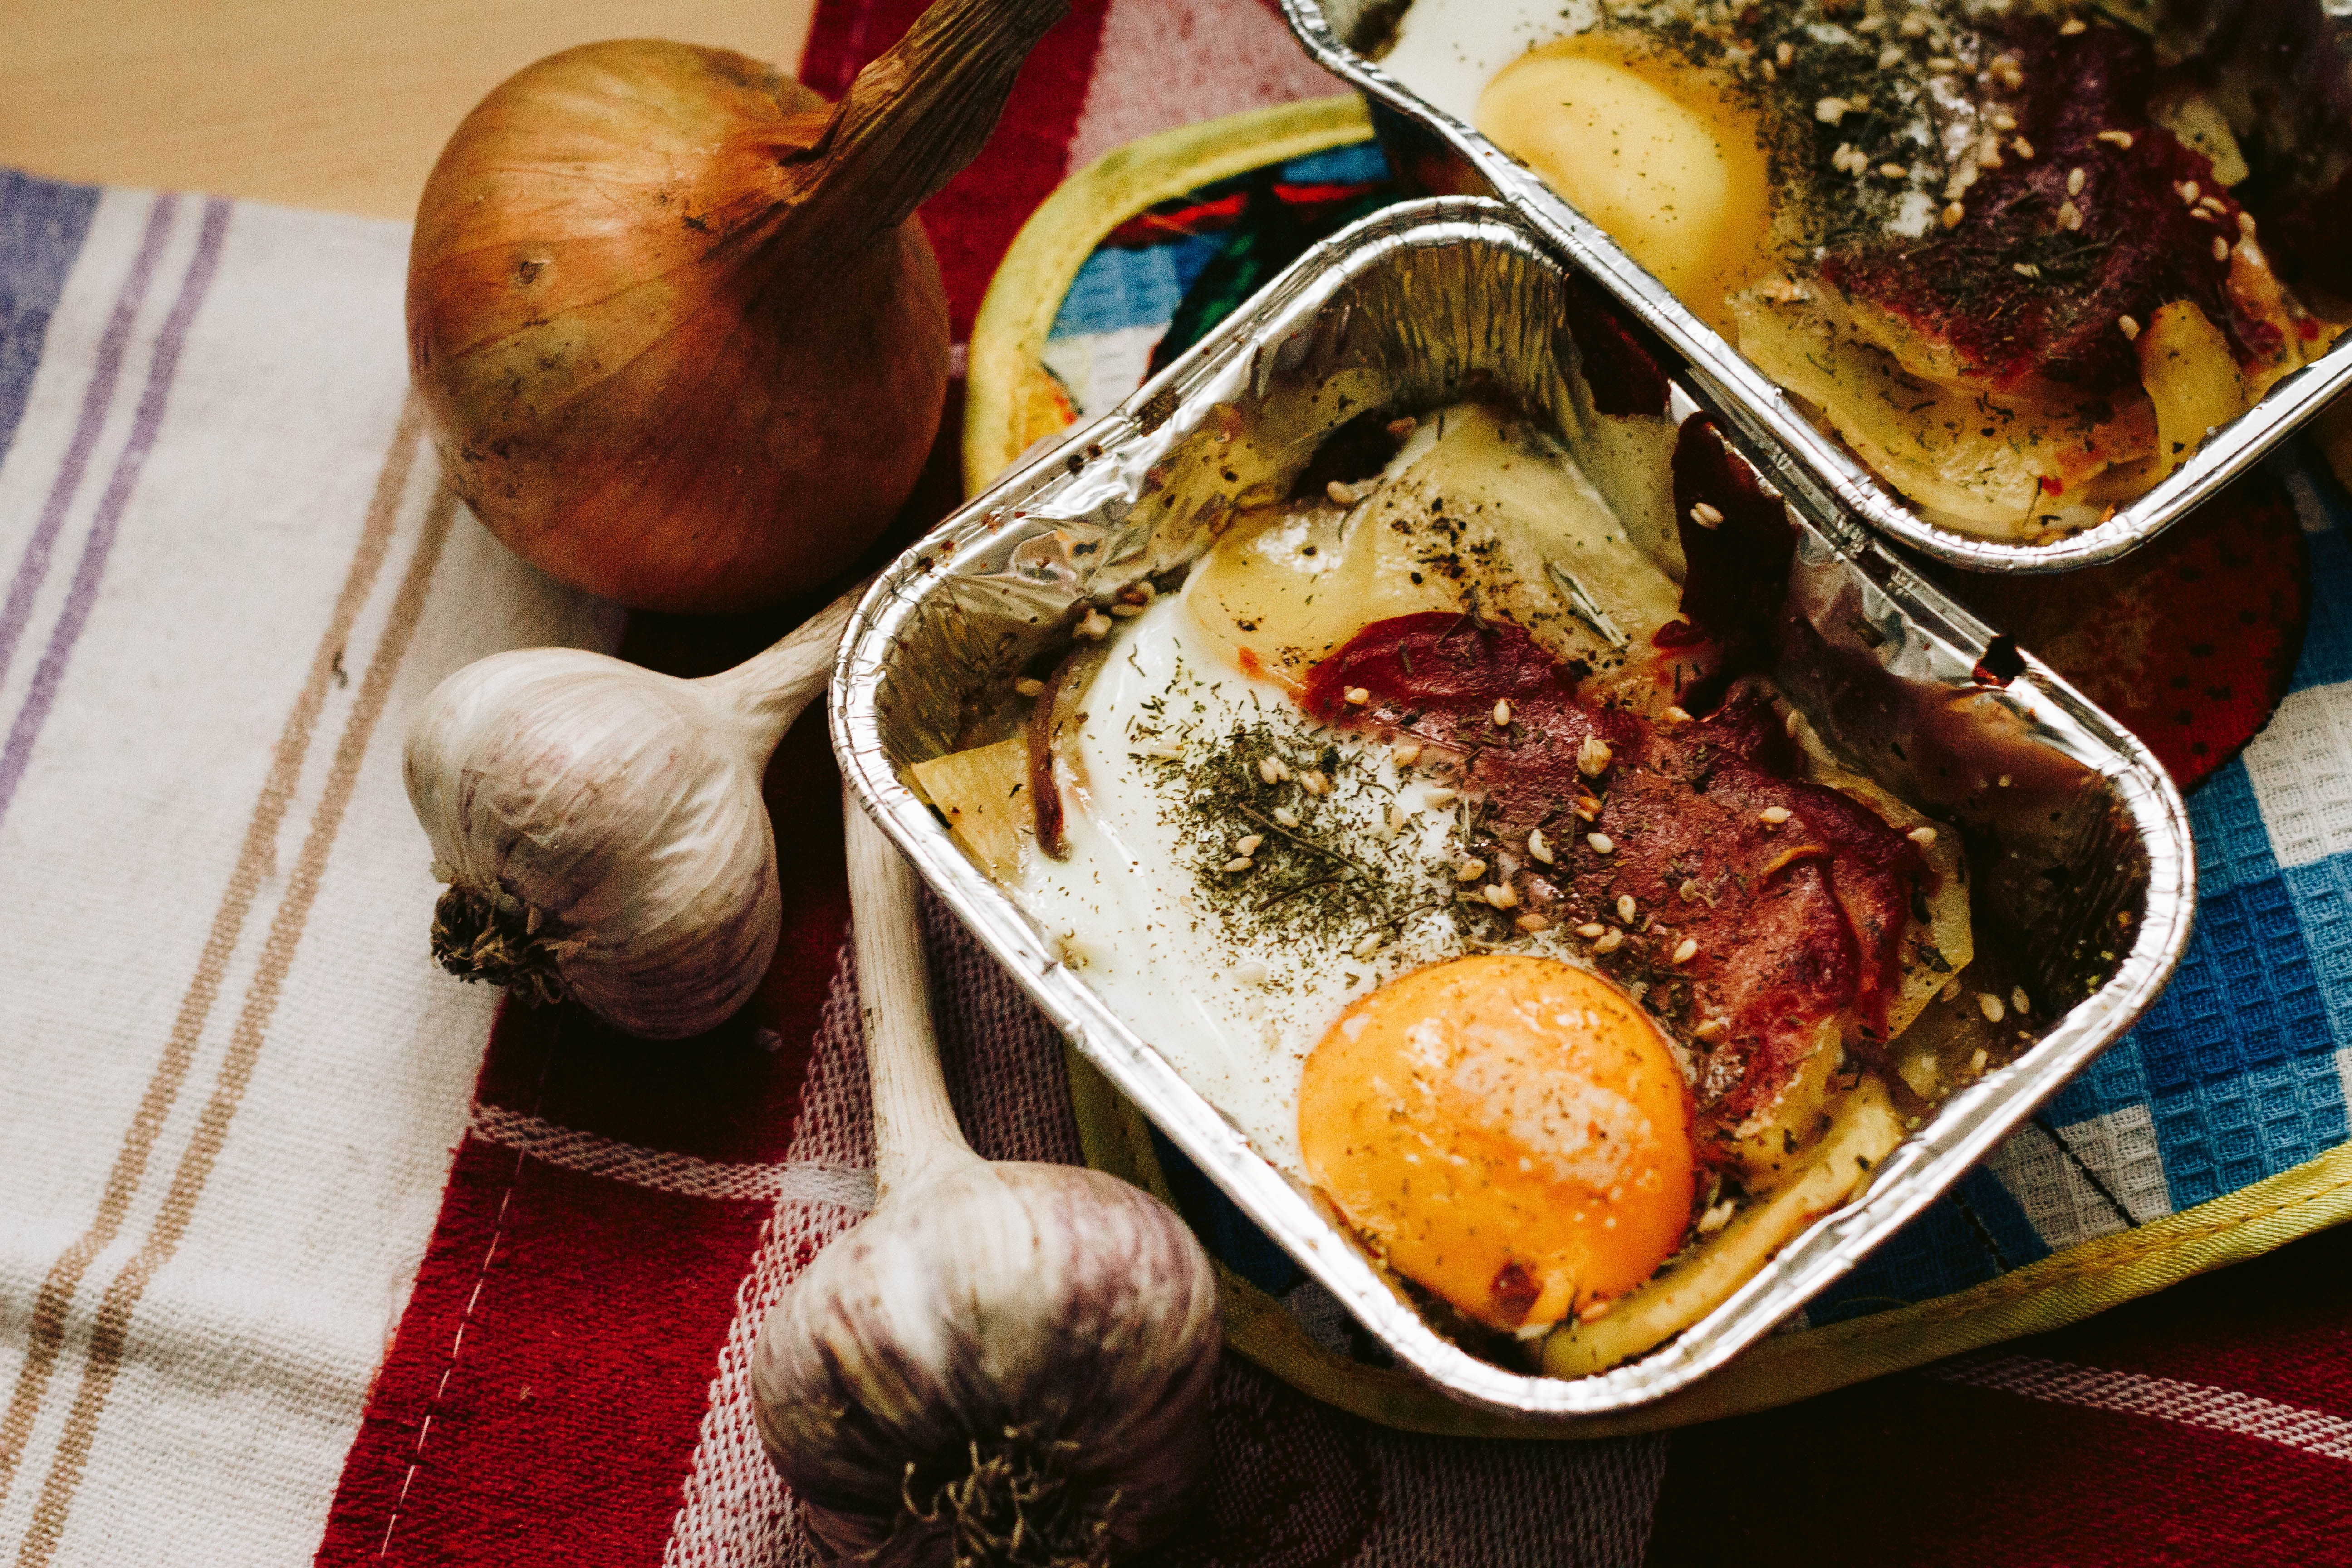 Cooked food in square grey tray beside garlics and onion photo